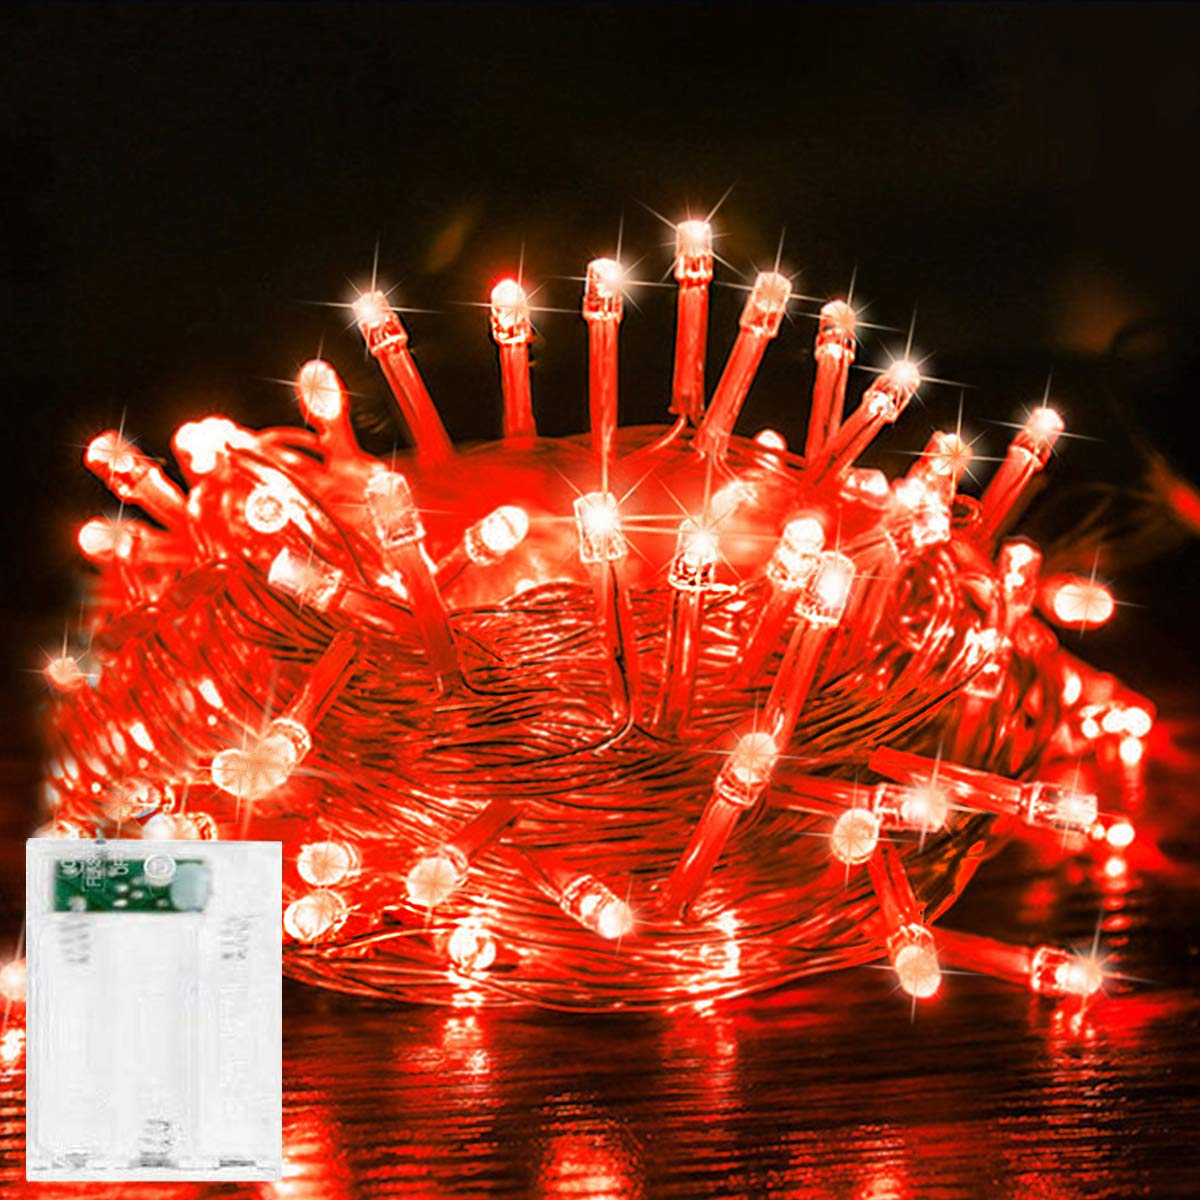 Led String Lights Battery Operated Fairy String Lights Twinkle Decorative Lights 50 Led 16 5ft Battery Powered Starry Lights For Bedroom Wedding Chirstmas Festival Party Garden Patio Decoration